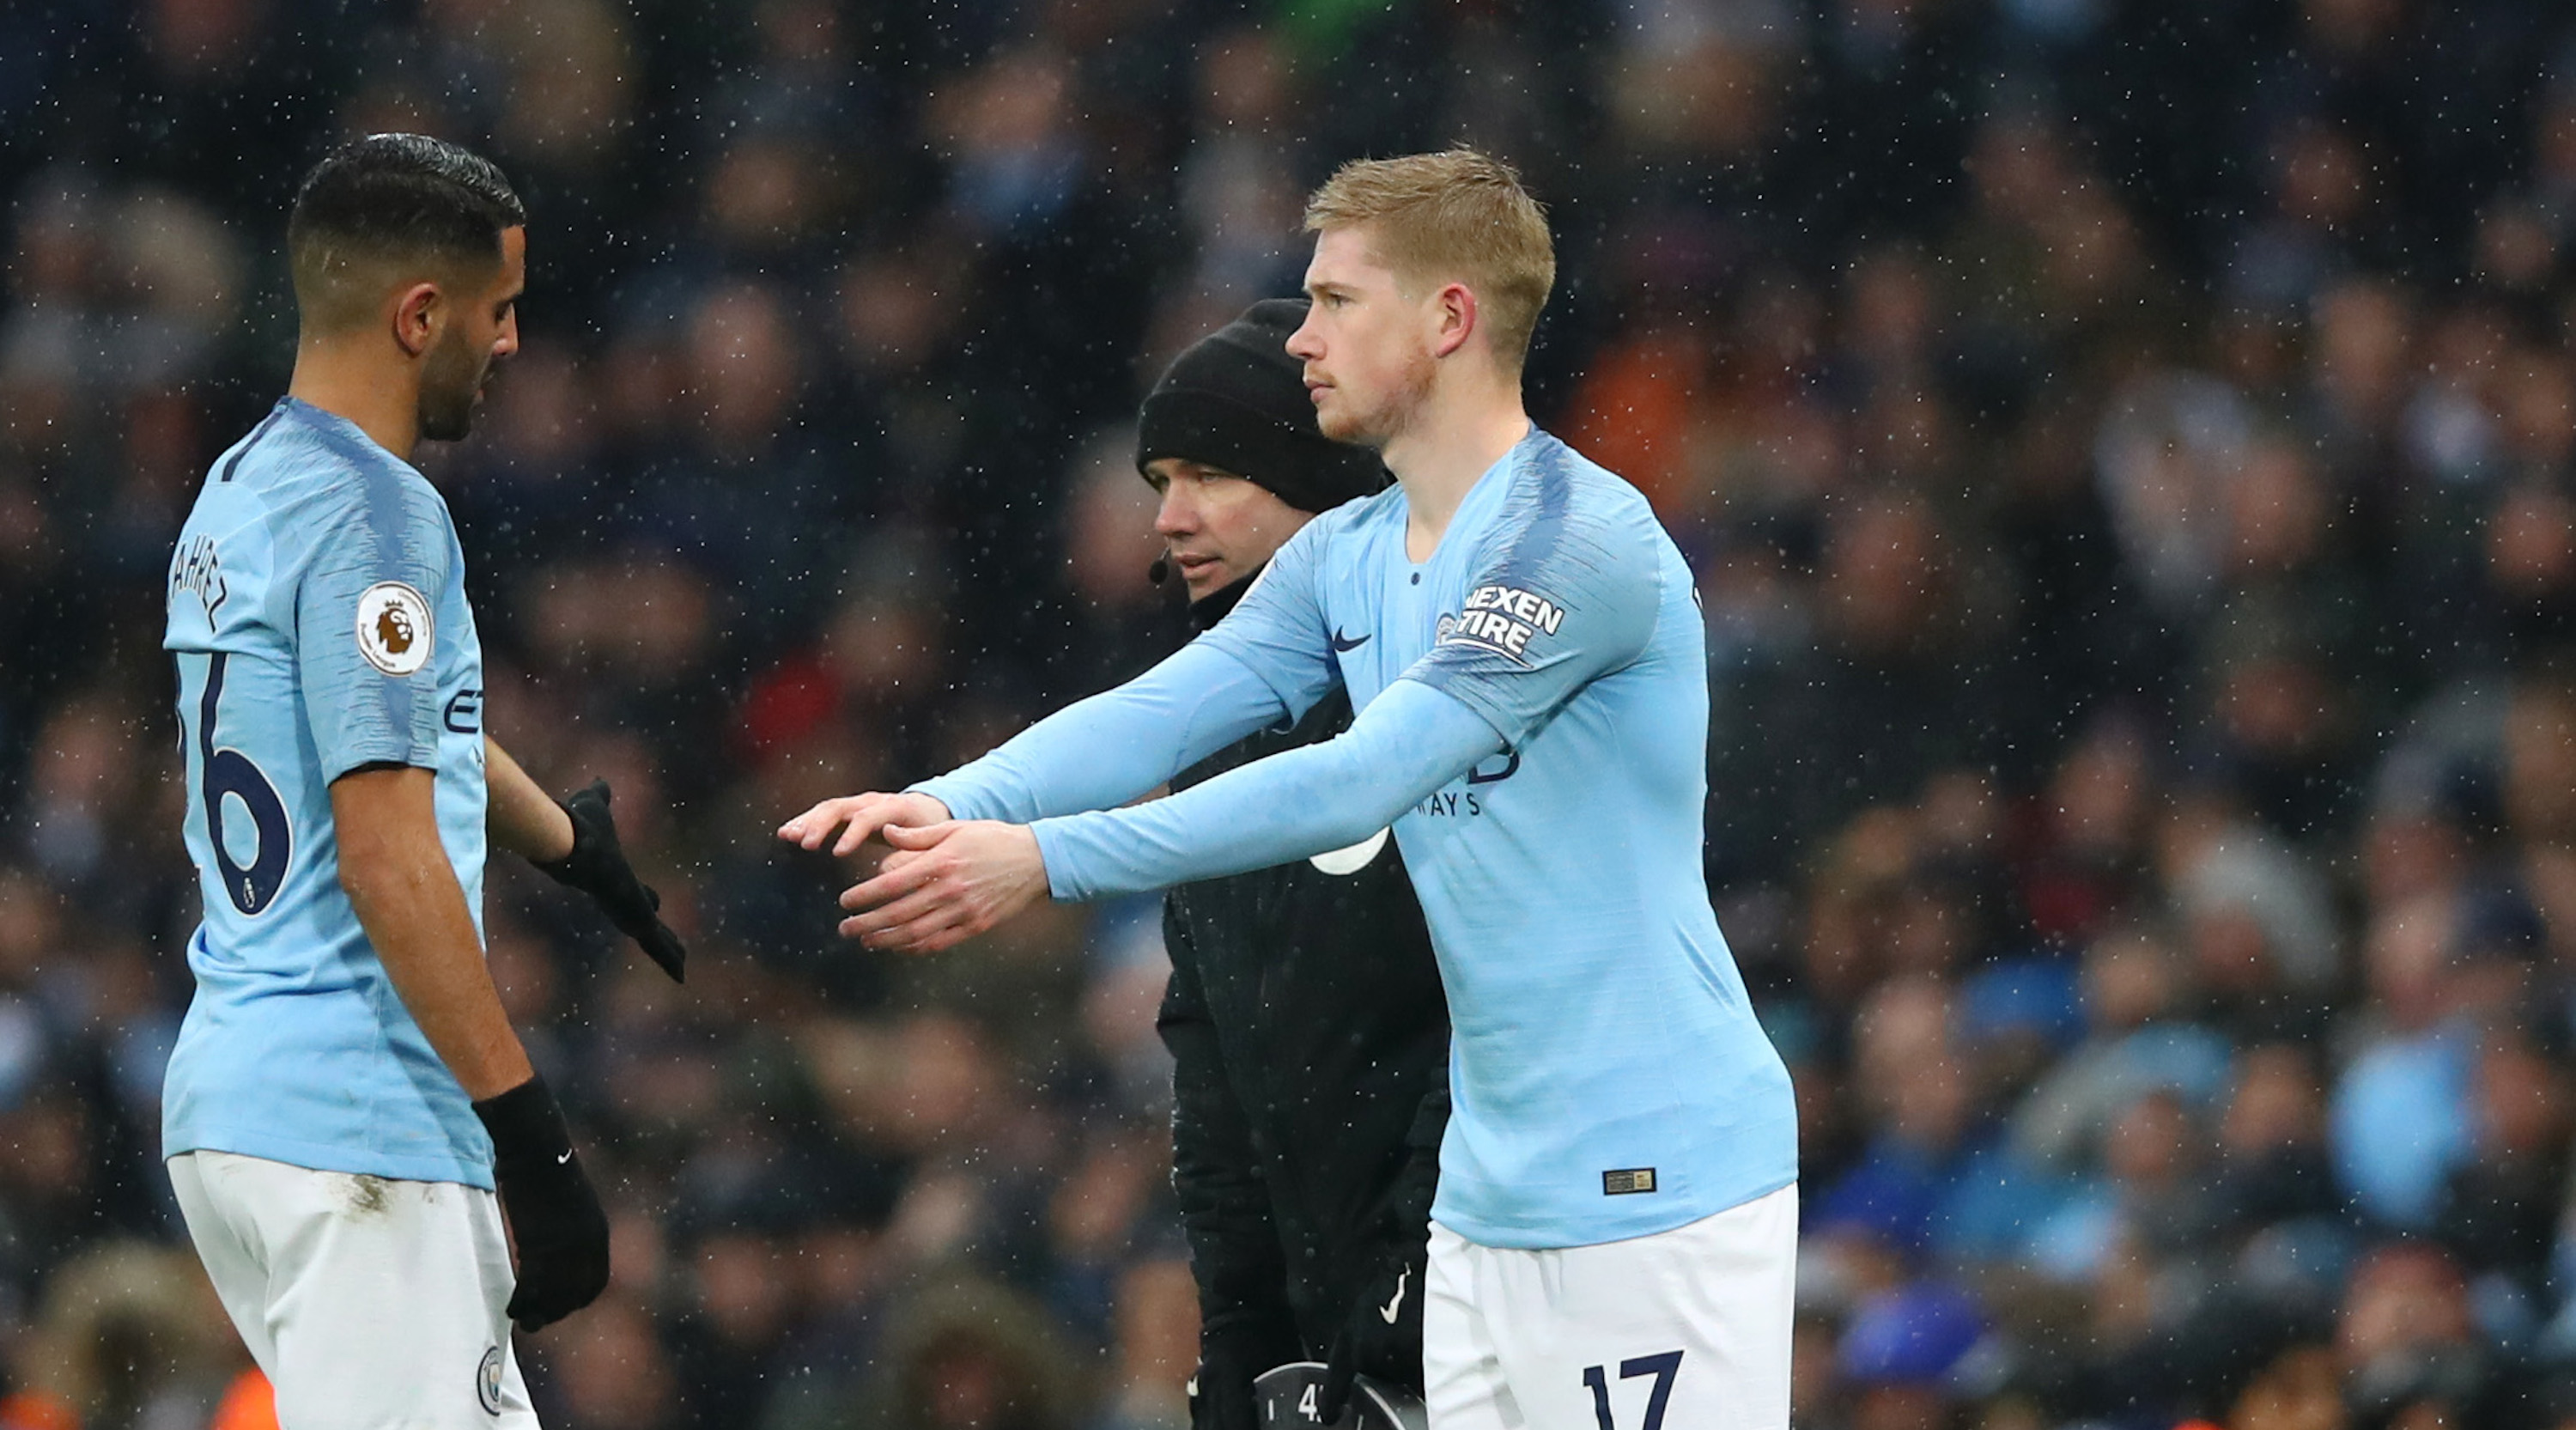 MANCHESTER, ENGLAND - DECEMBER 15: Riyad Mahrez of Manchester City is substituted off for Kevin De Bruyne of Manchester City during the Premier League match between Manchester City and Everton FC at Etihad Stadium on December 15, 2018 in Manchester, United Kingdom. (Photo by Clive Brunskill/Getty Images)